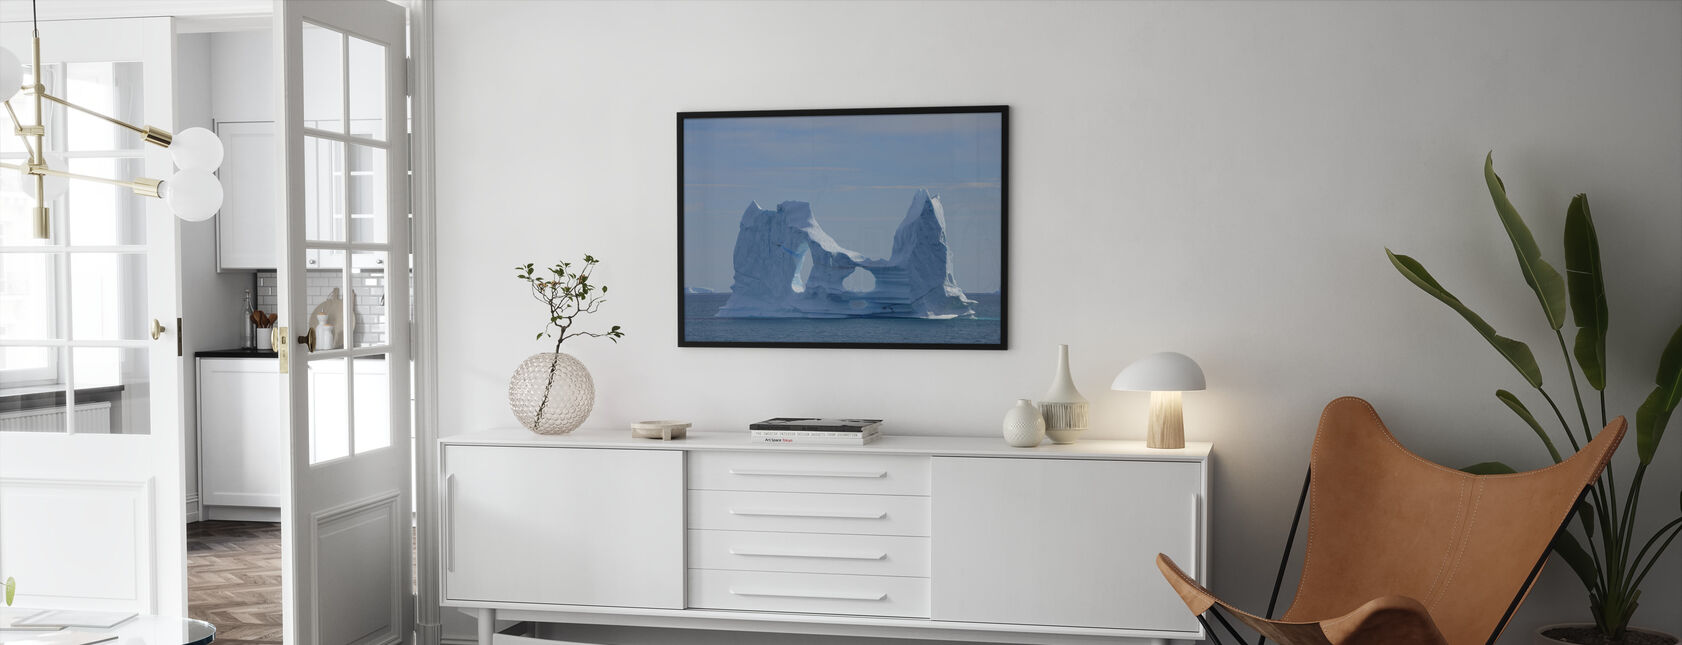 Floating Greenland - Framed print - Living Room